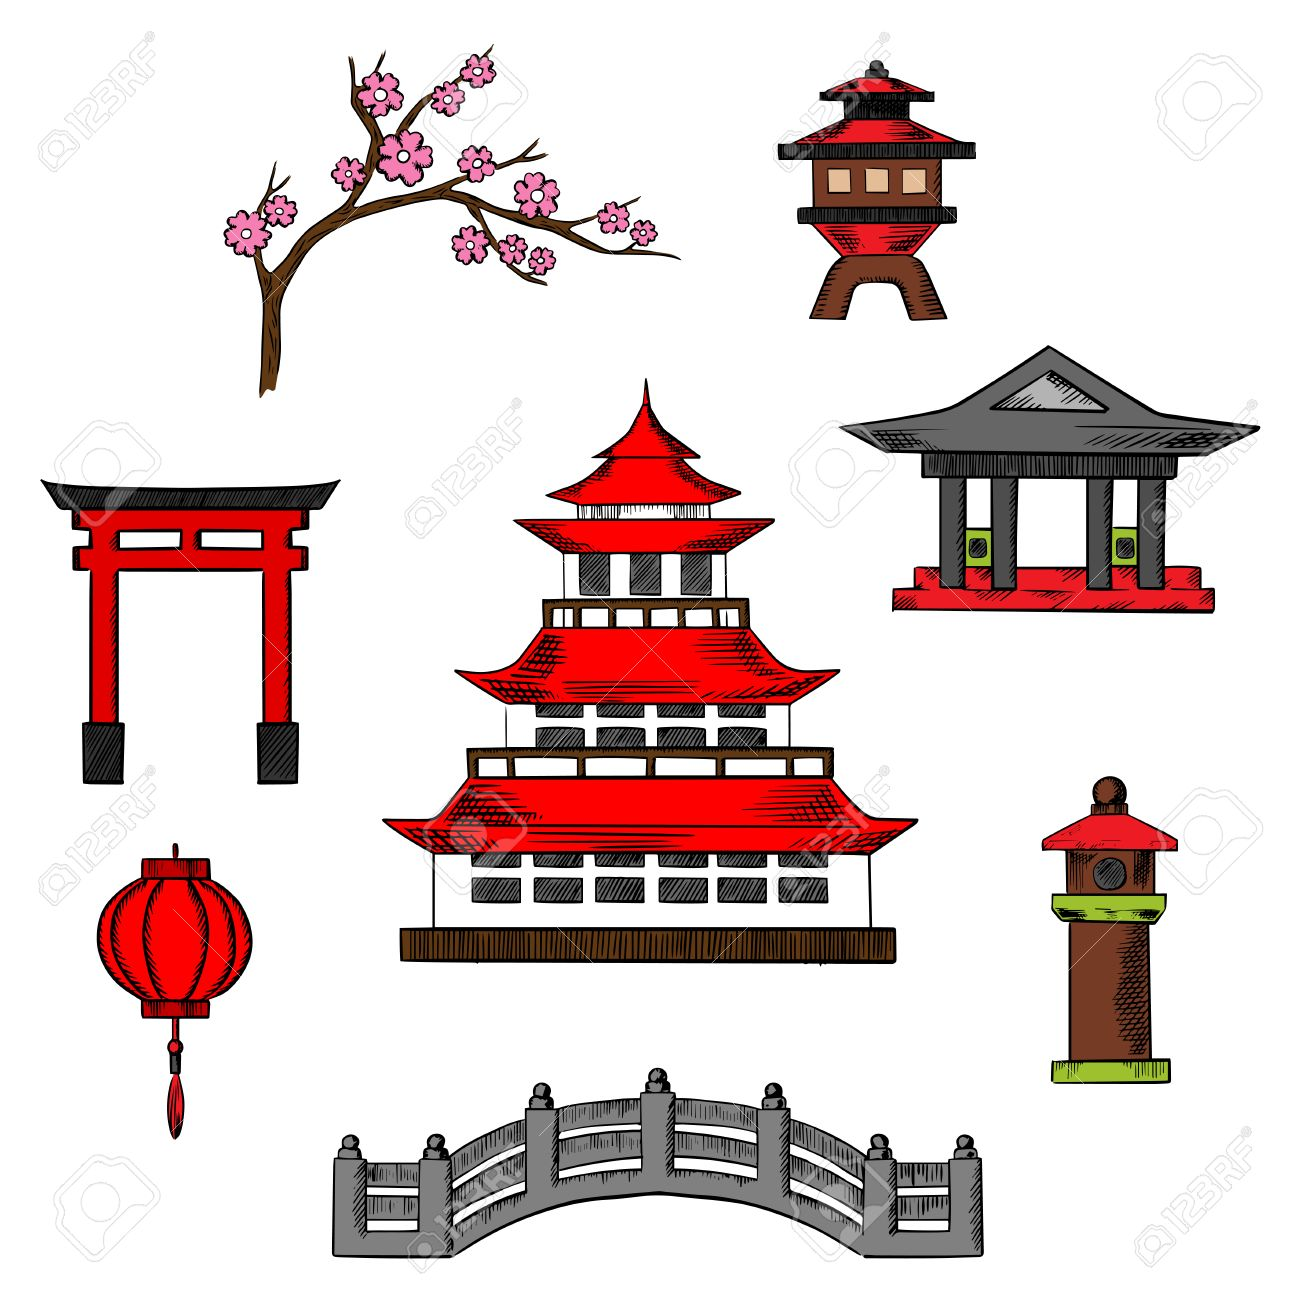 Japan Travel And Culture Icons Of Traditional Japanese Pagoda Royalty Free Cliparts Vectors And Stock Illustration Image 51857044